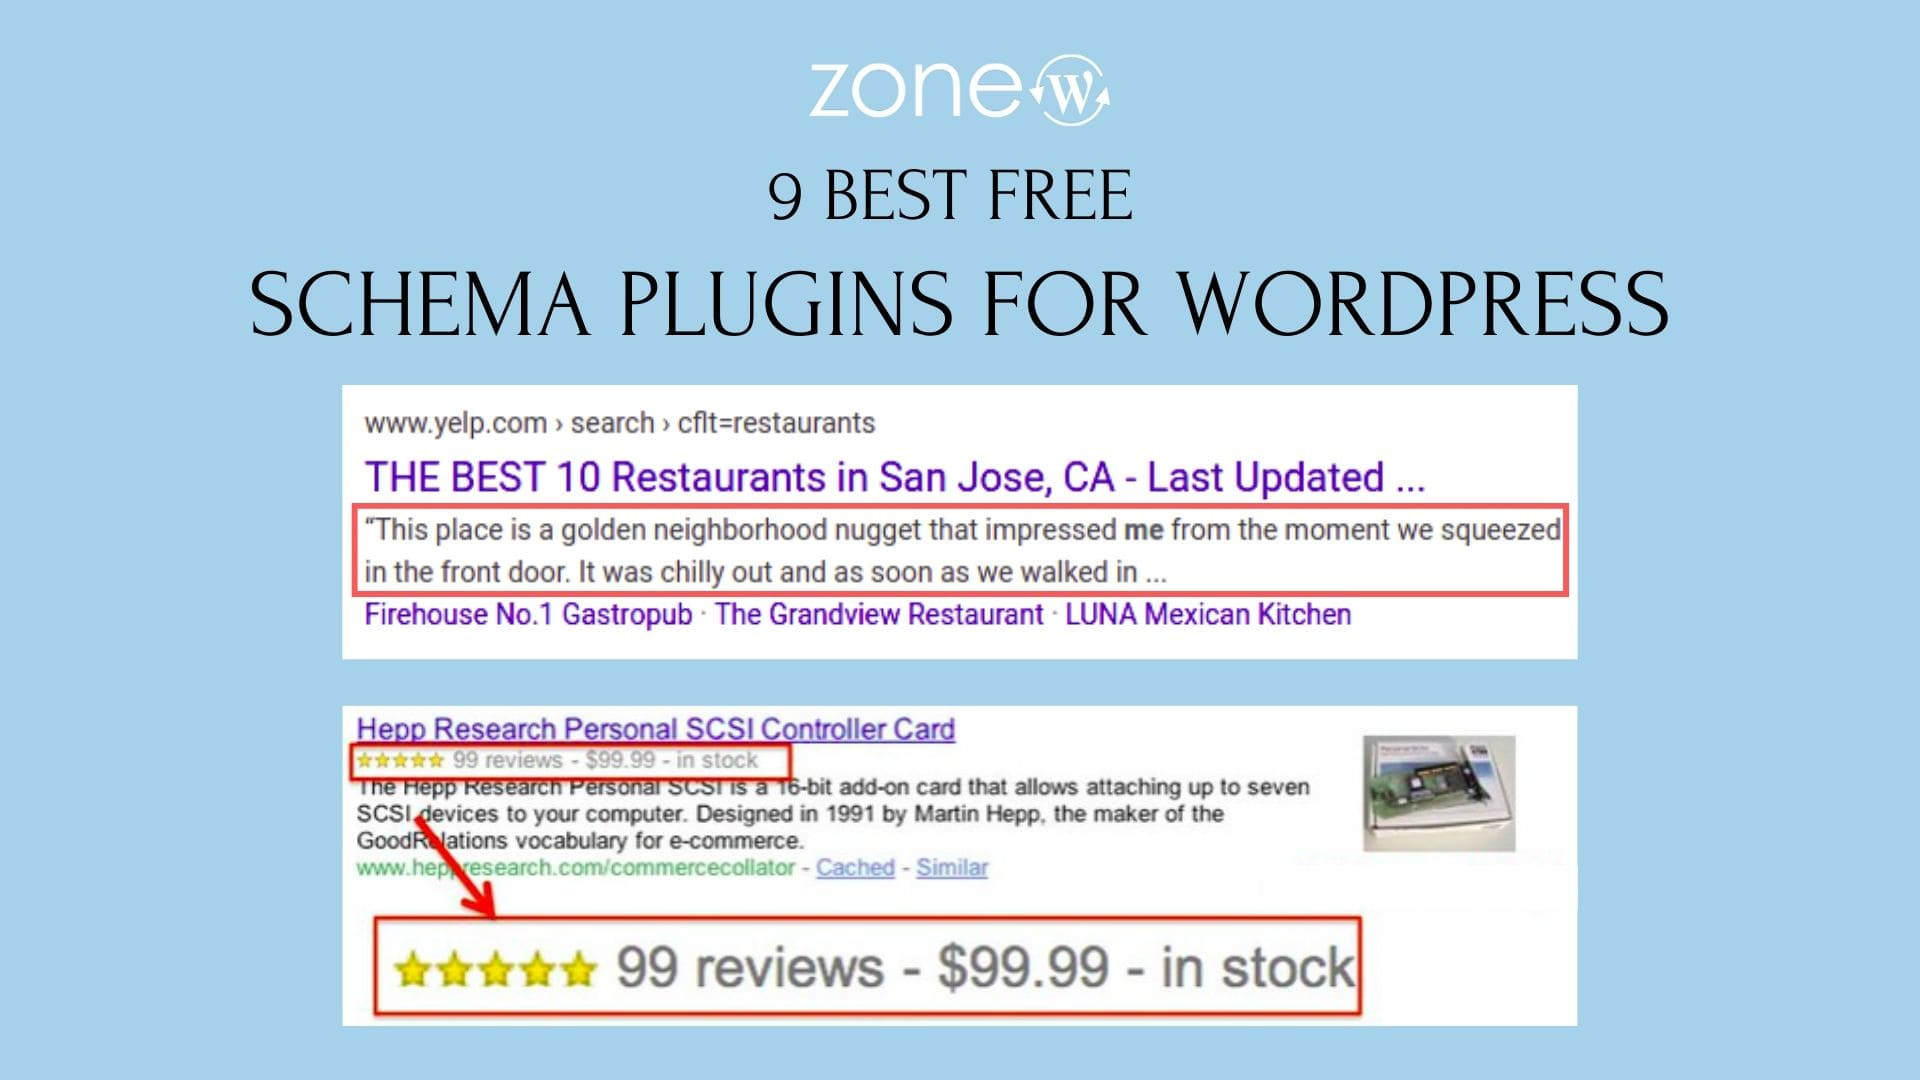 9 Best Free Schema Plugins for WordPress